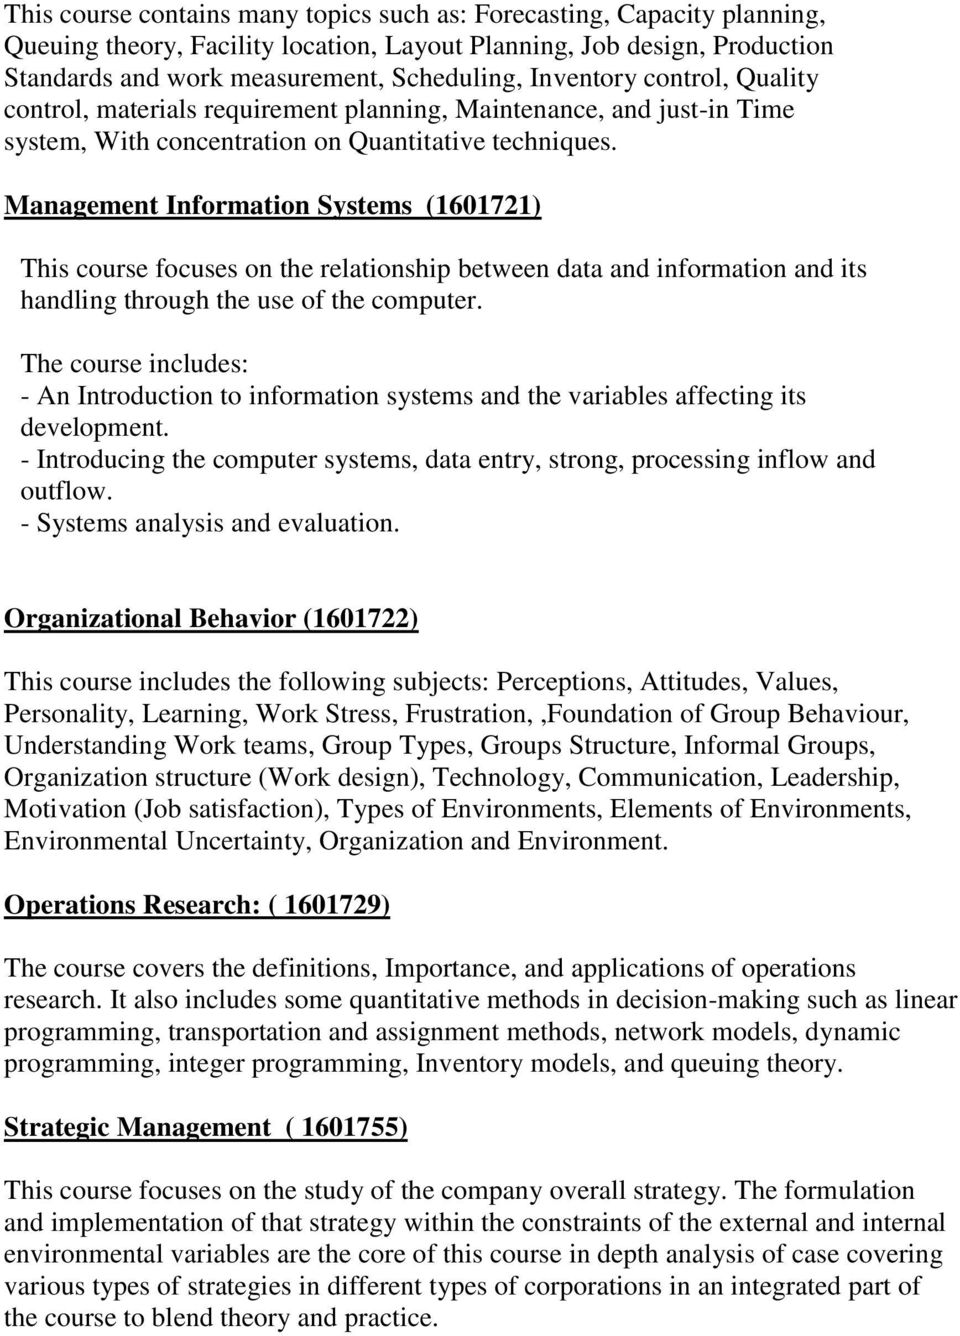 MA Degree Plan in Business Administration (Thesis Track) - PDF